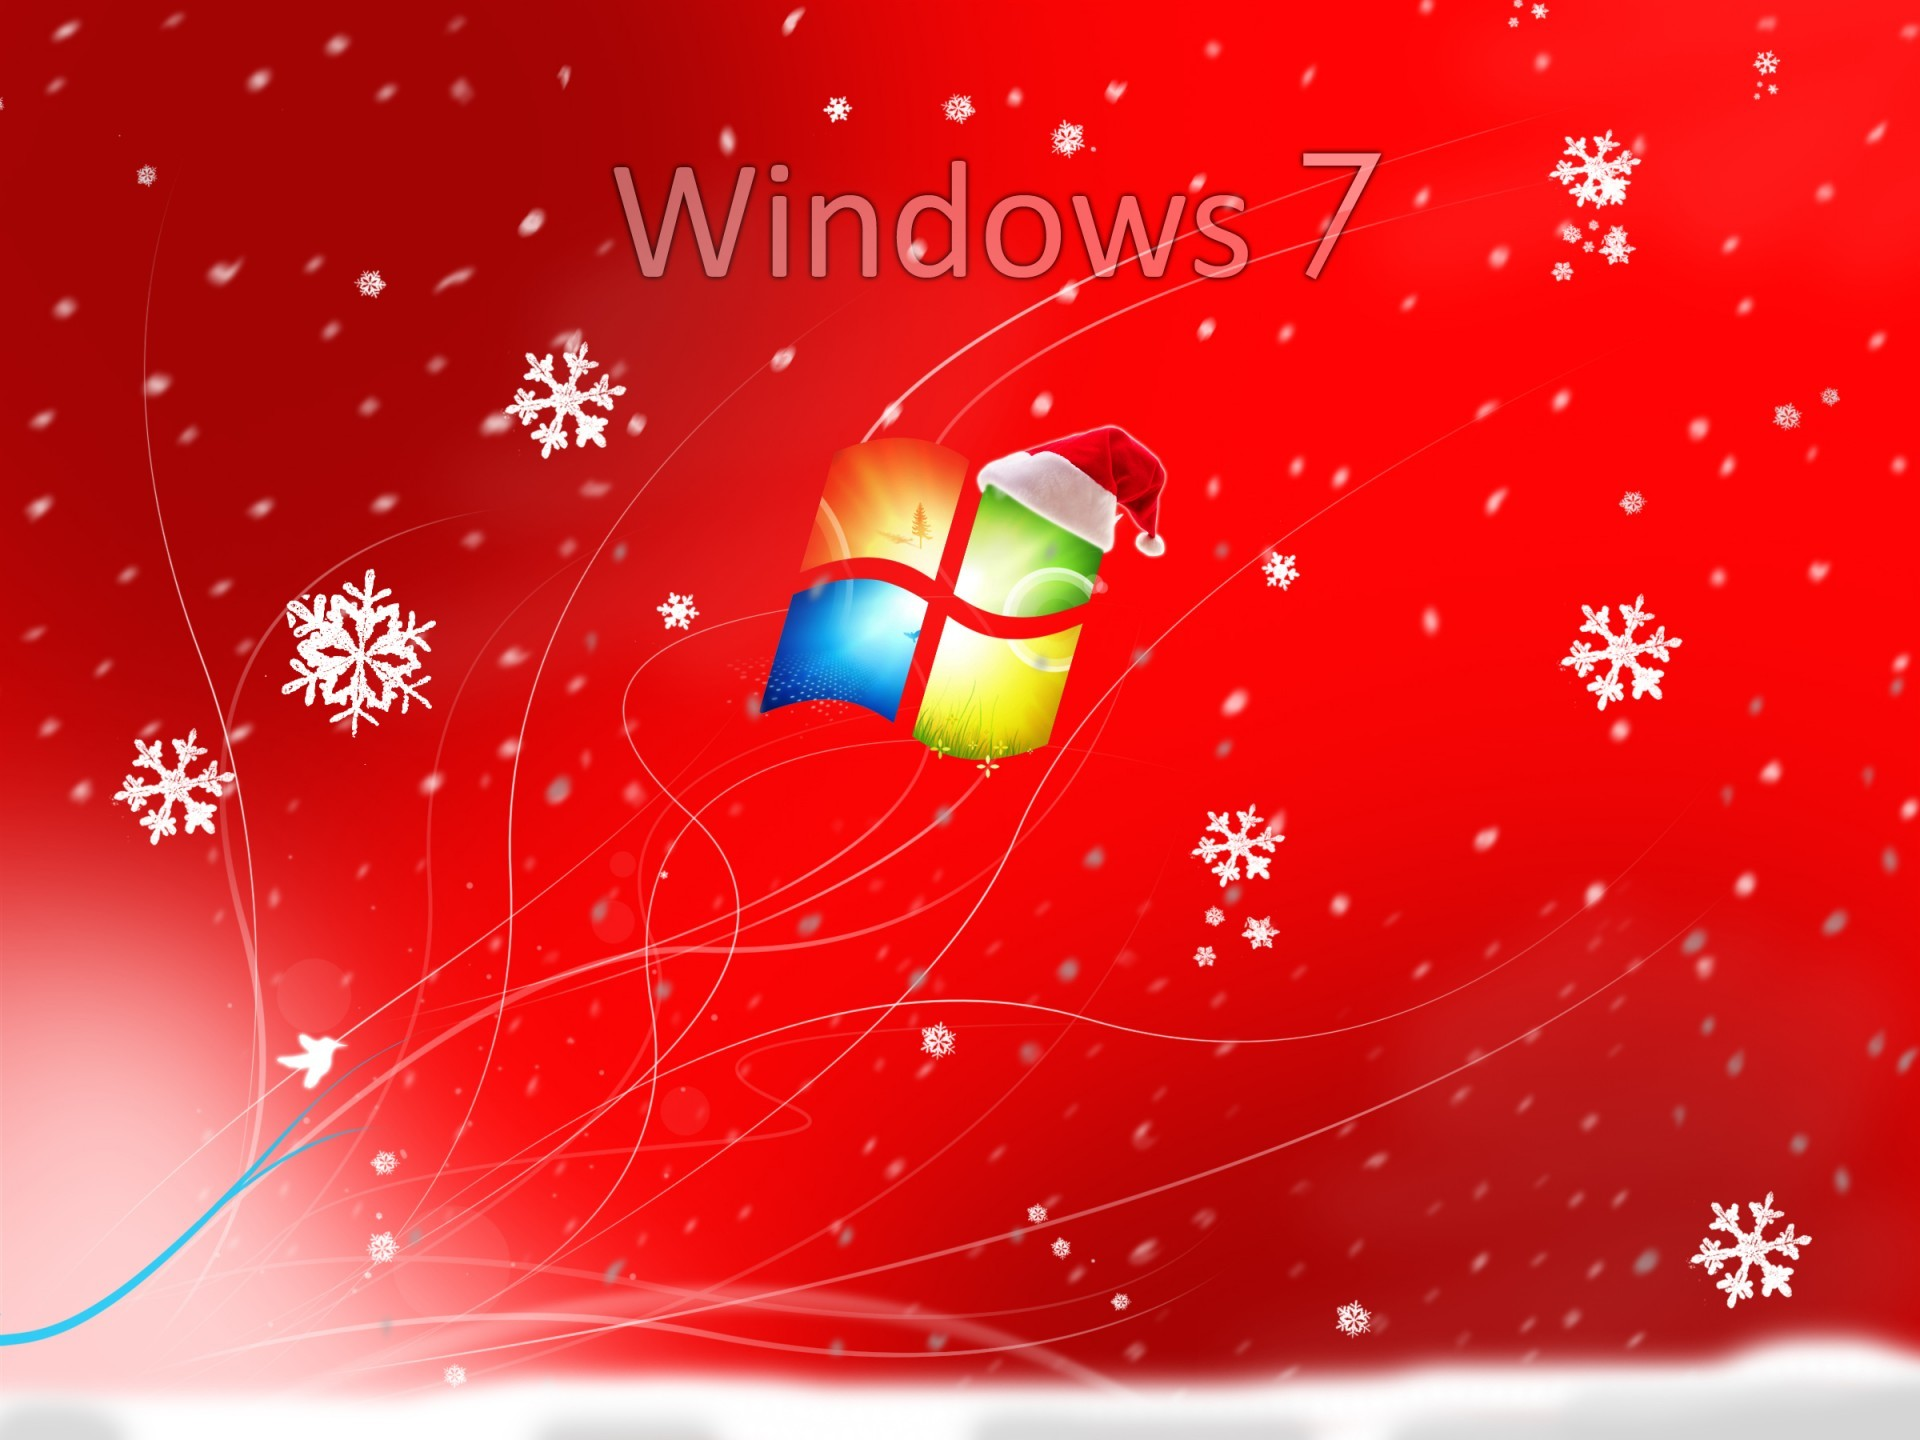 wallpaper screensavers for windows 7  55  images